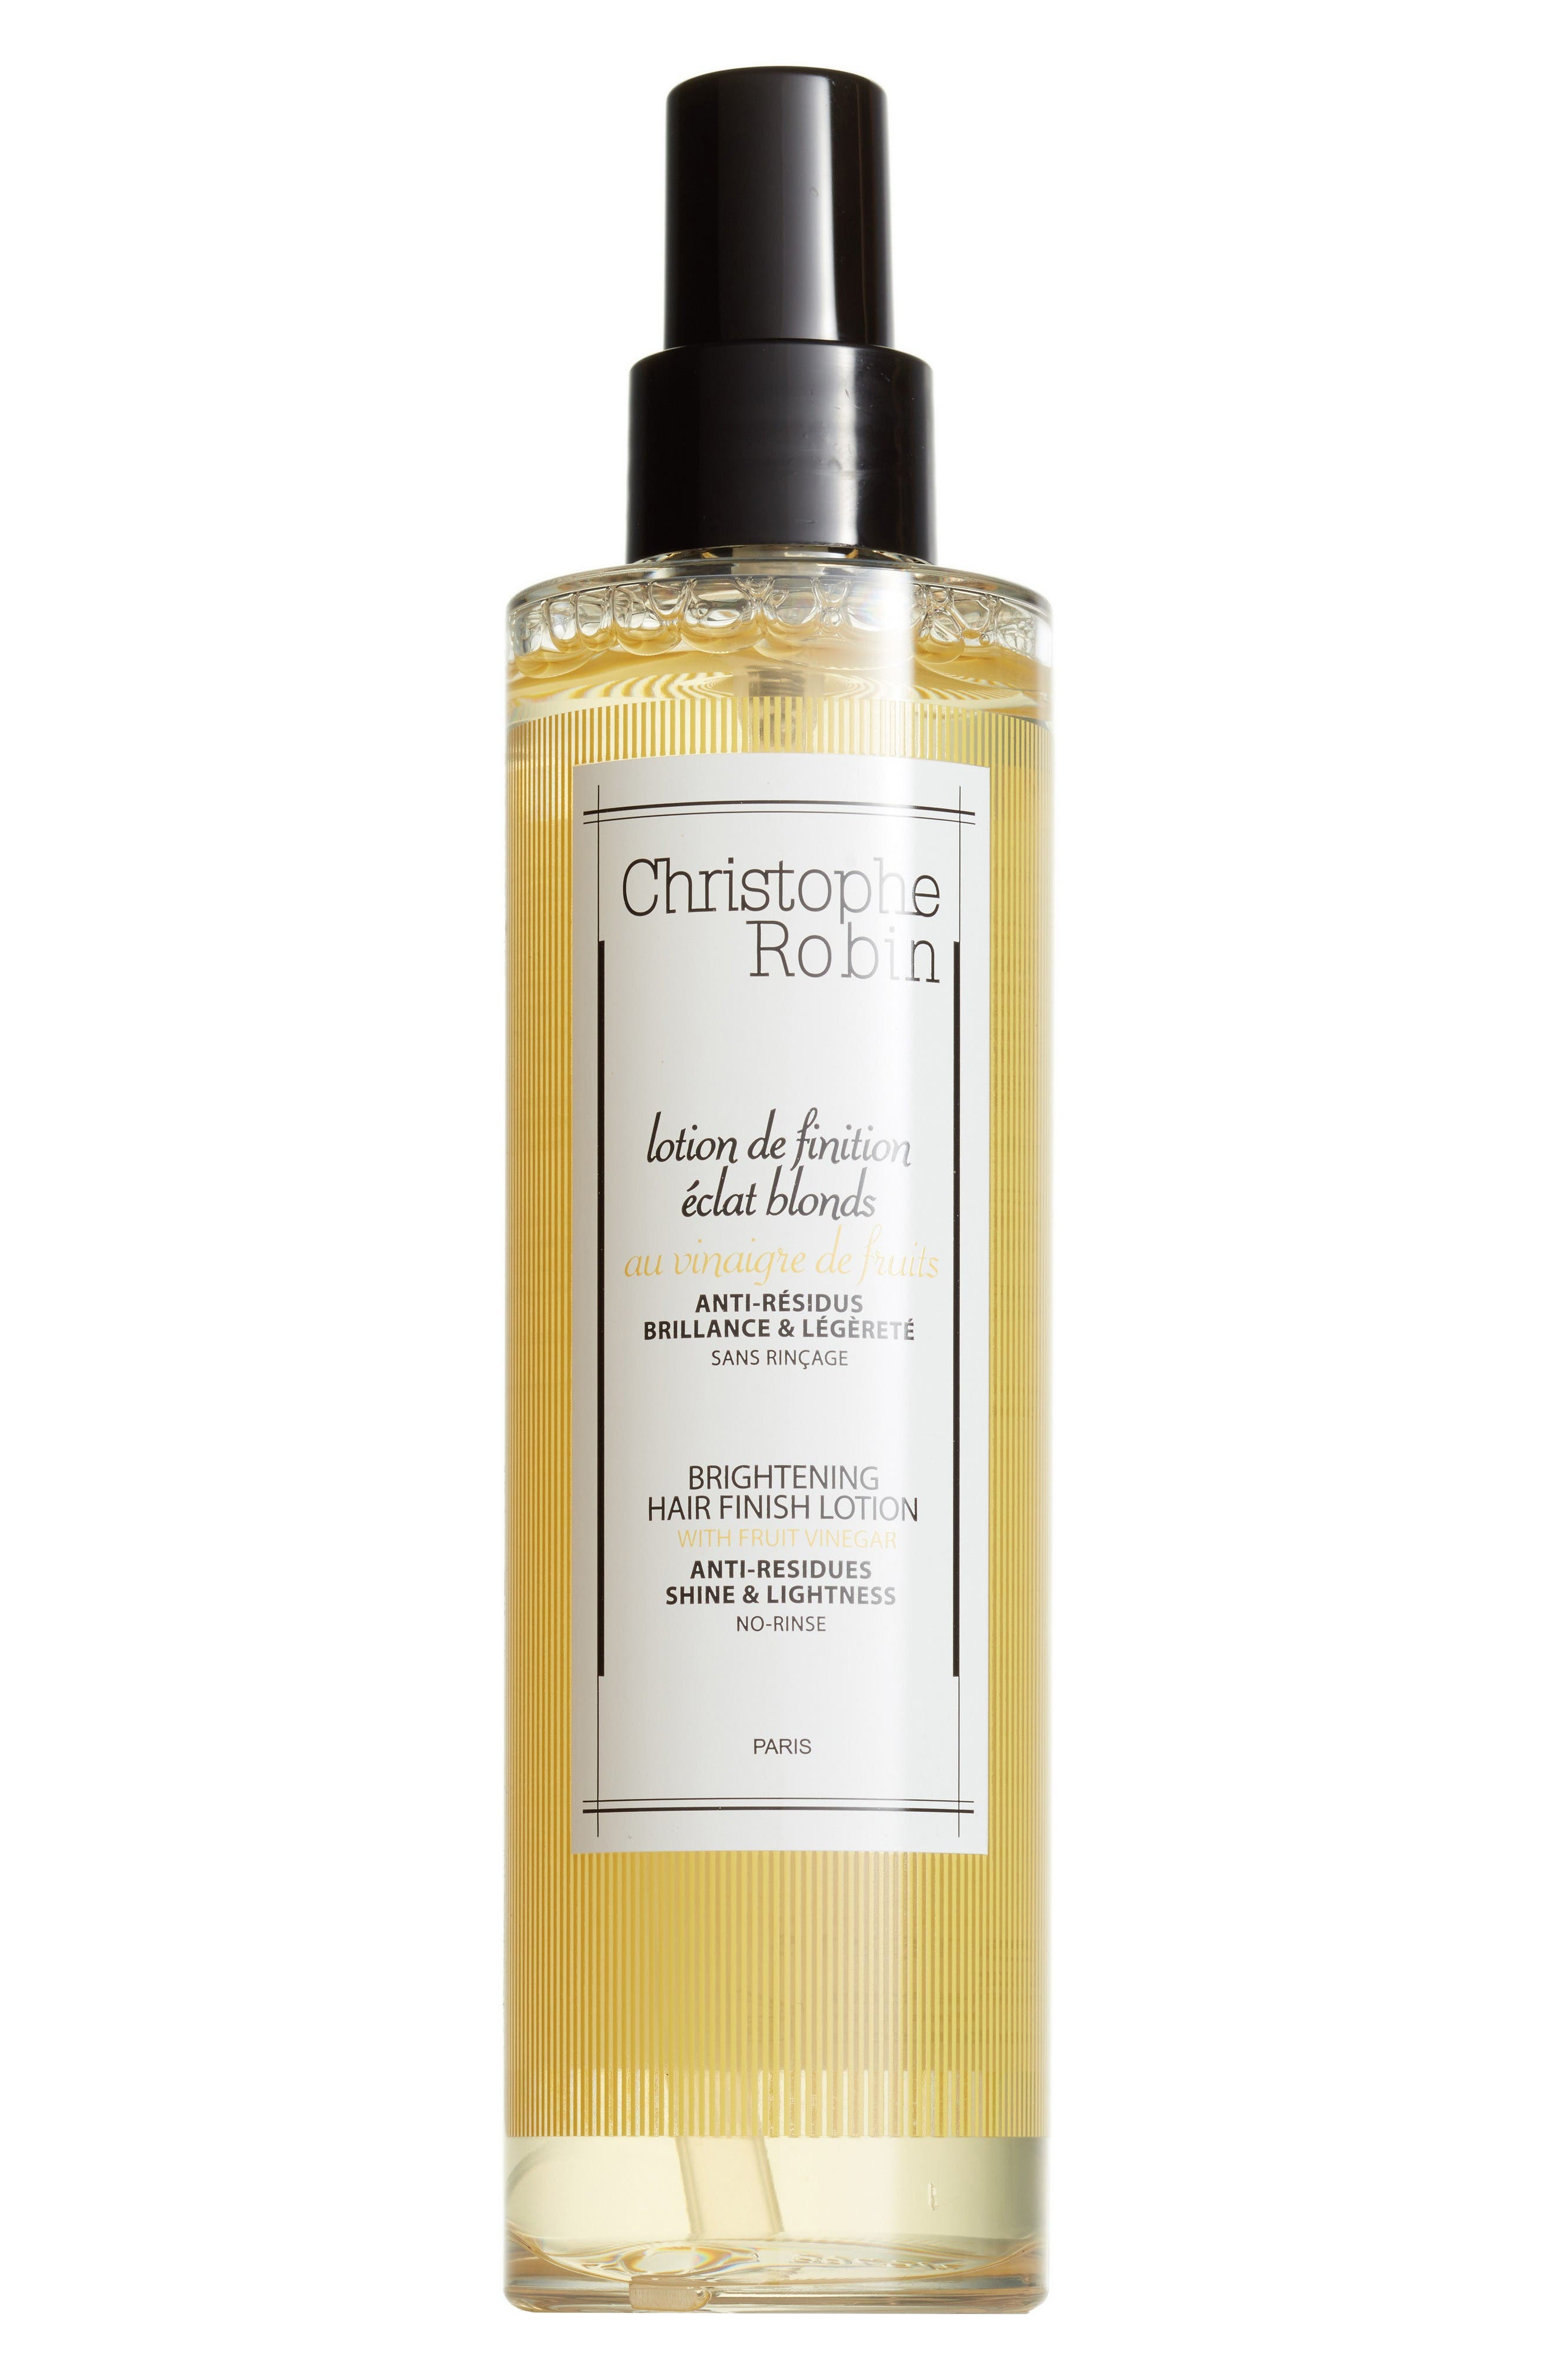 Main Image - SPACE.NK.apothecary Christophe Robin Brightening Hair Finish Lotion with Fruit Vinegar